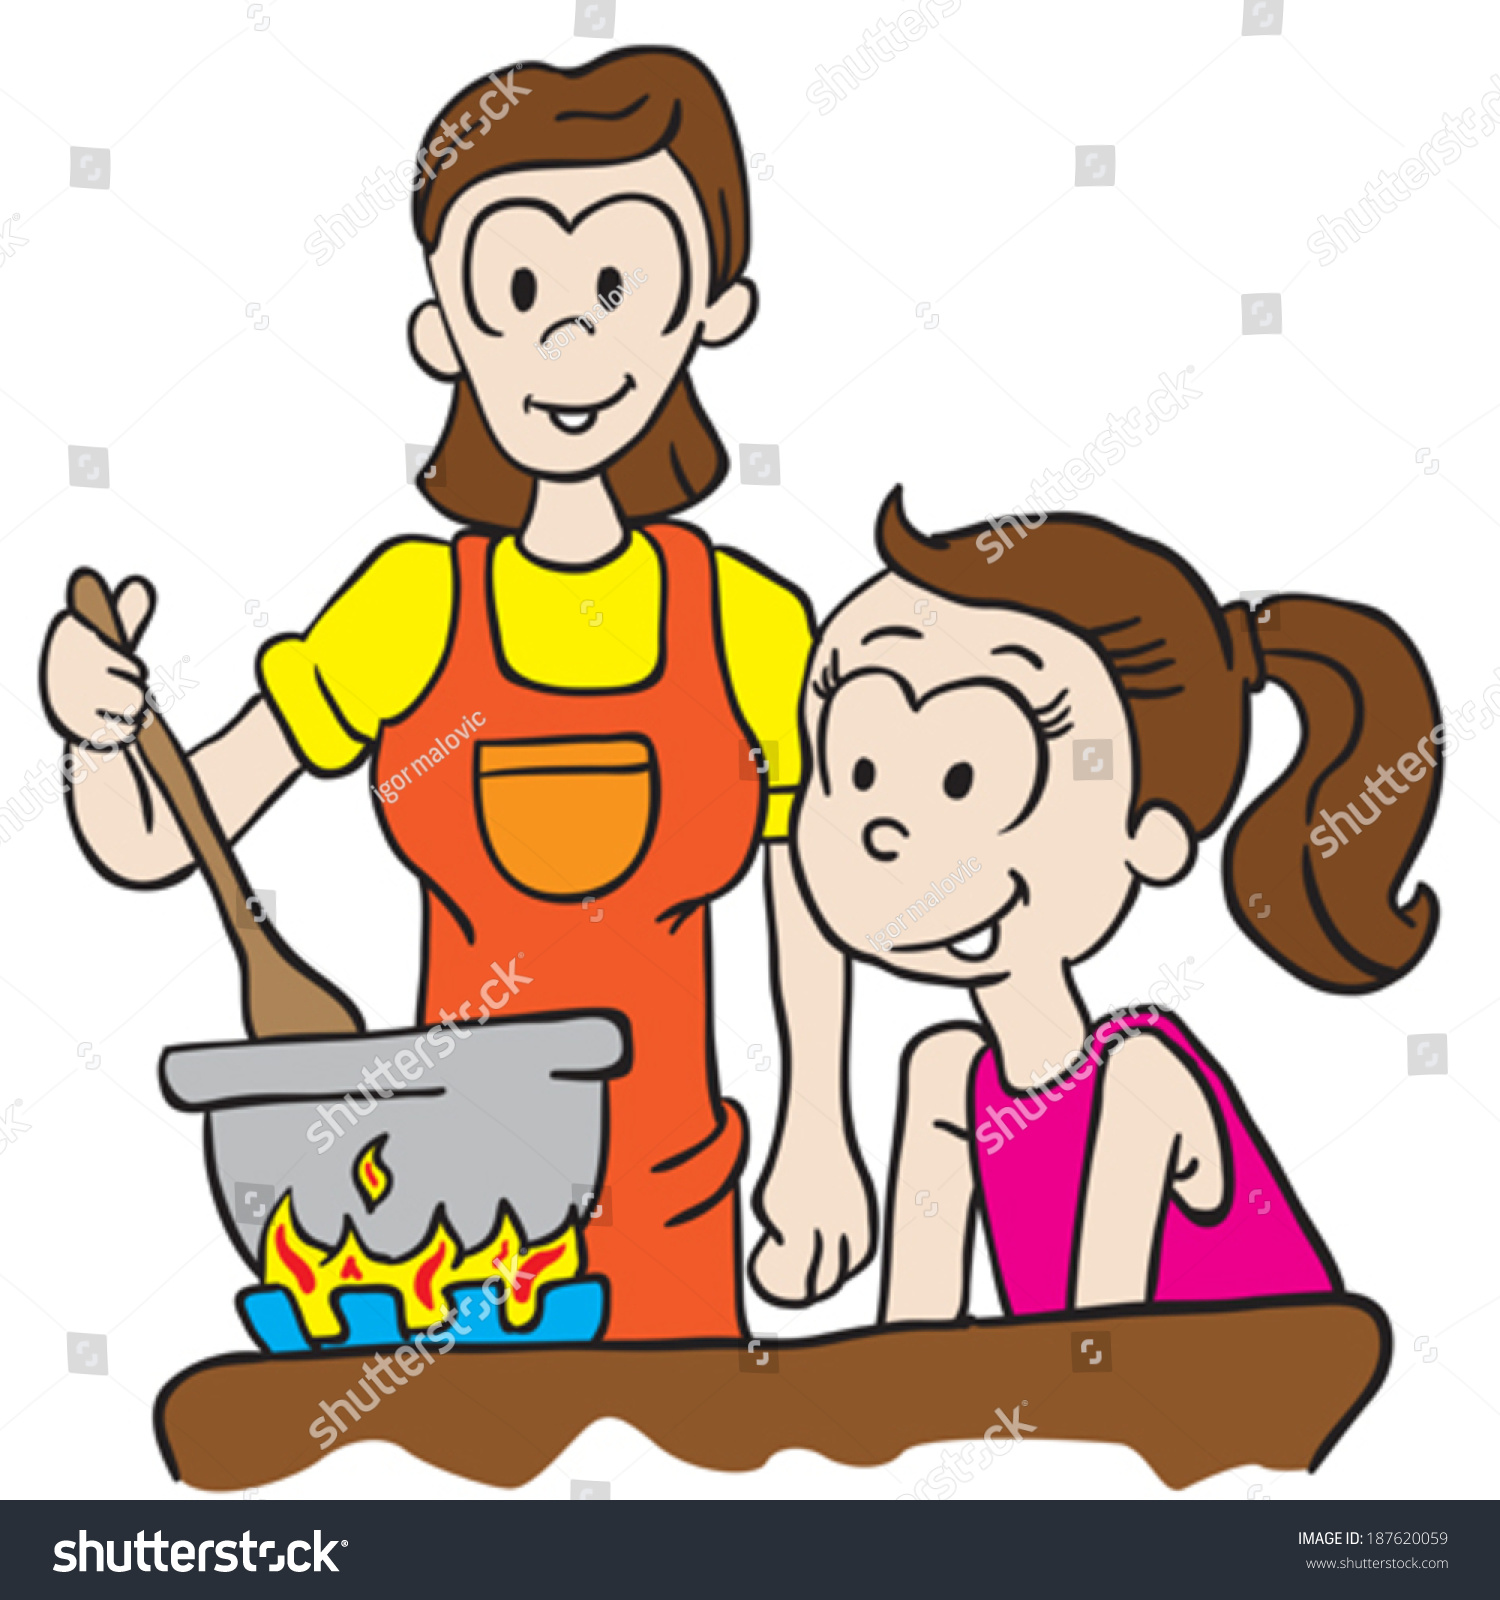 mother and daughter cooking cartoon illustration